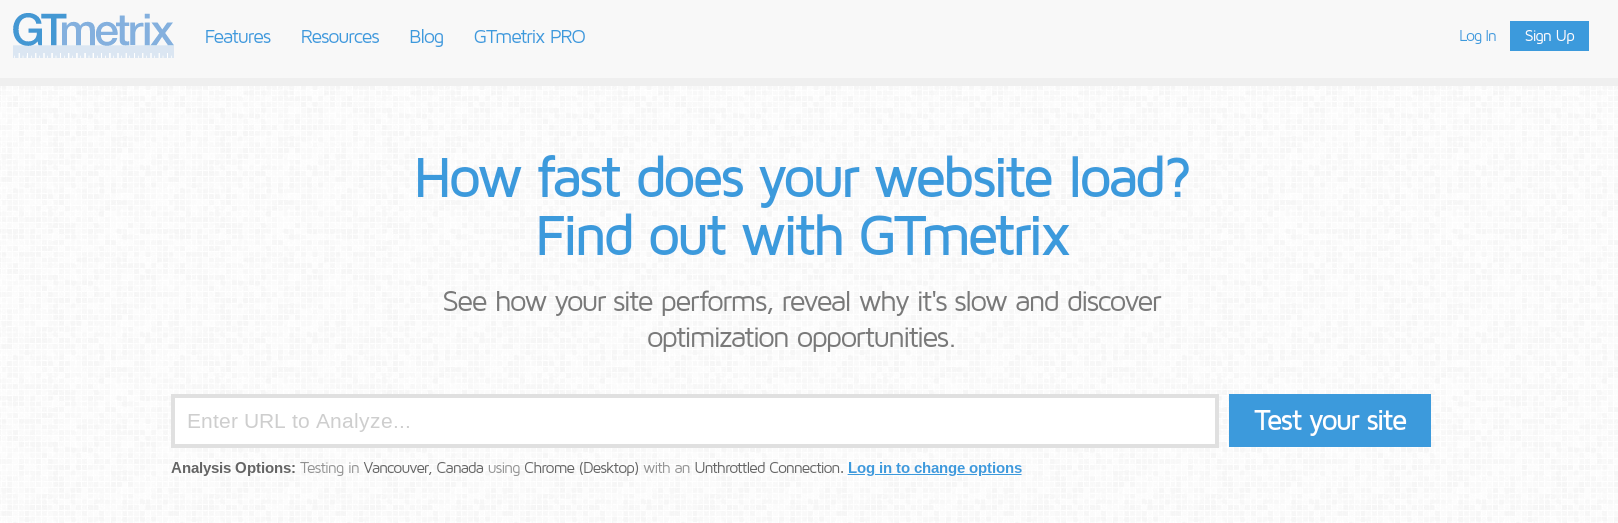 The GTmetrix site performance tool.